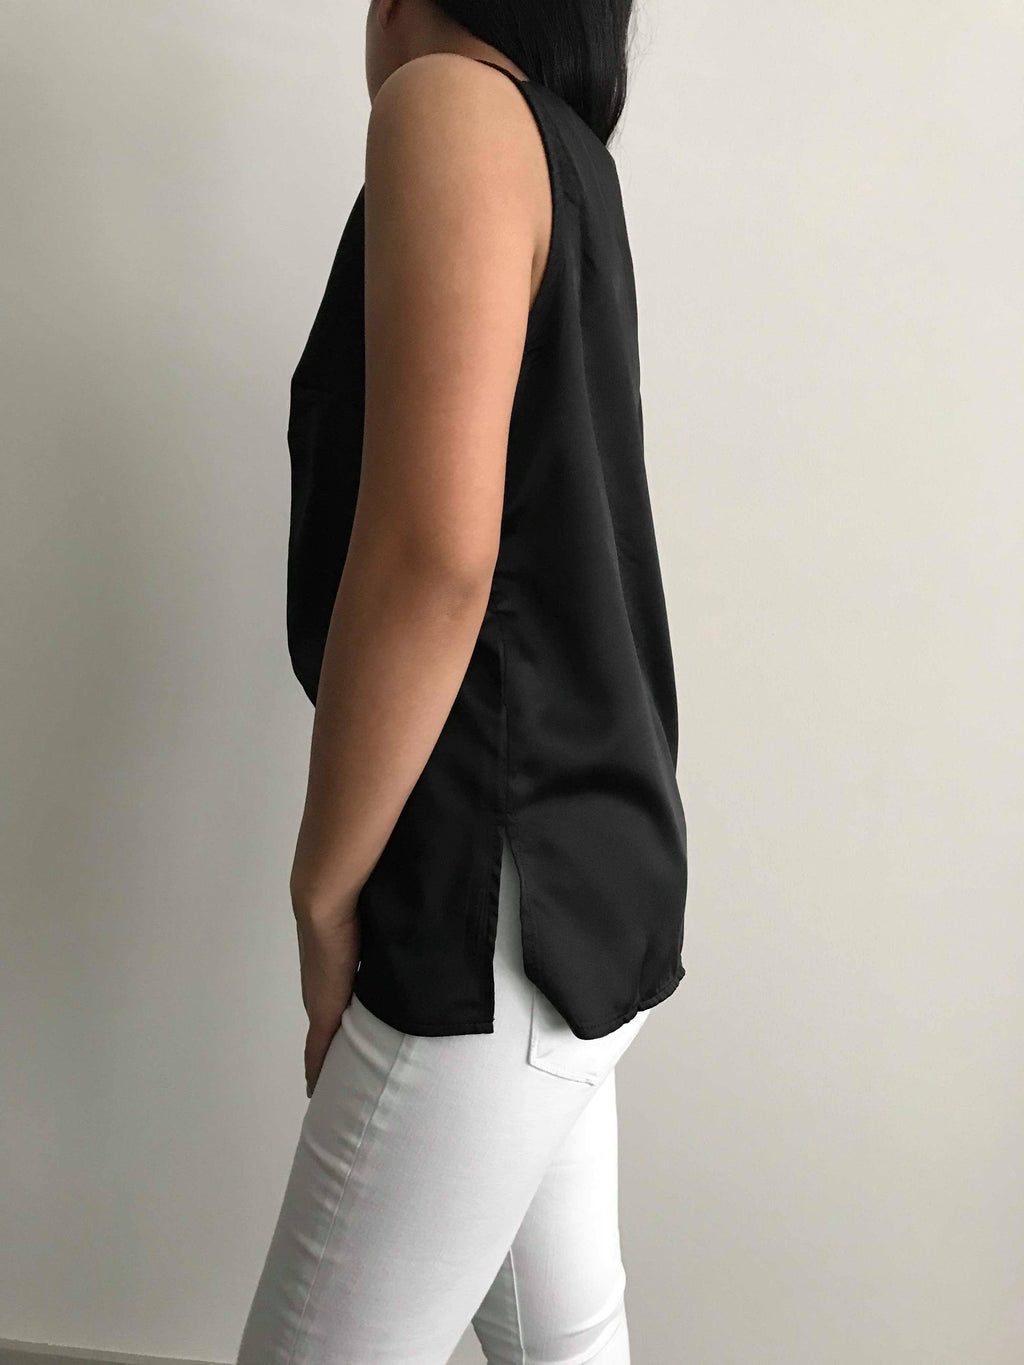 Black Satin Sleeveless Top